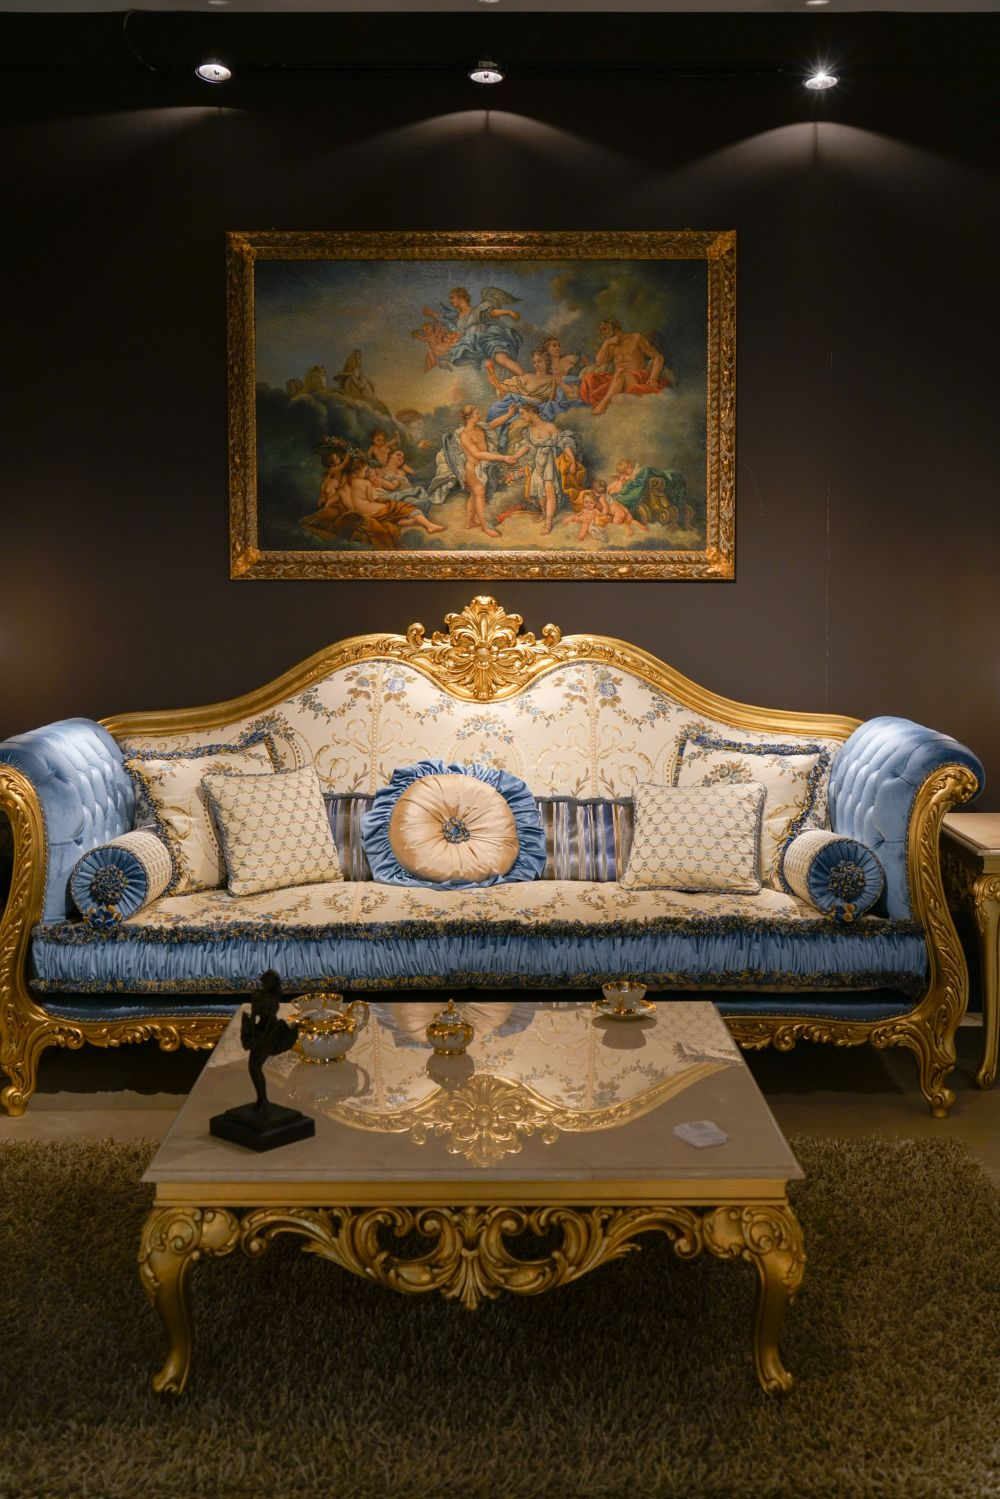 Sofa Upholstery Parts Details Make The Difference In Baroque, Rococo Style Furniture